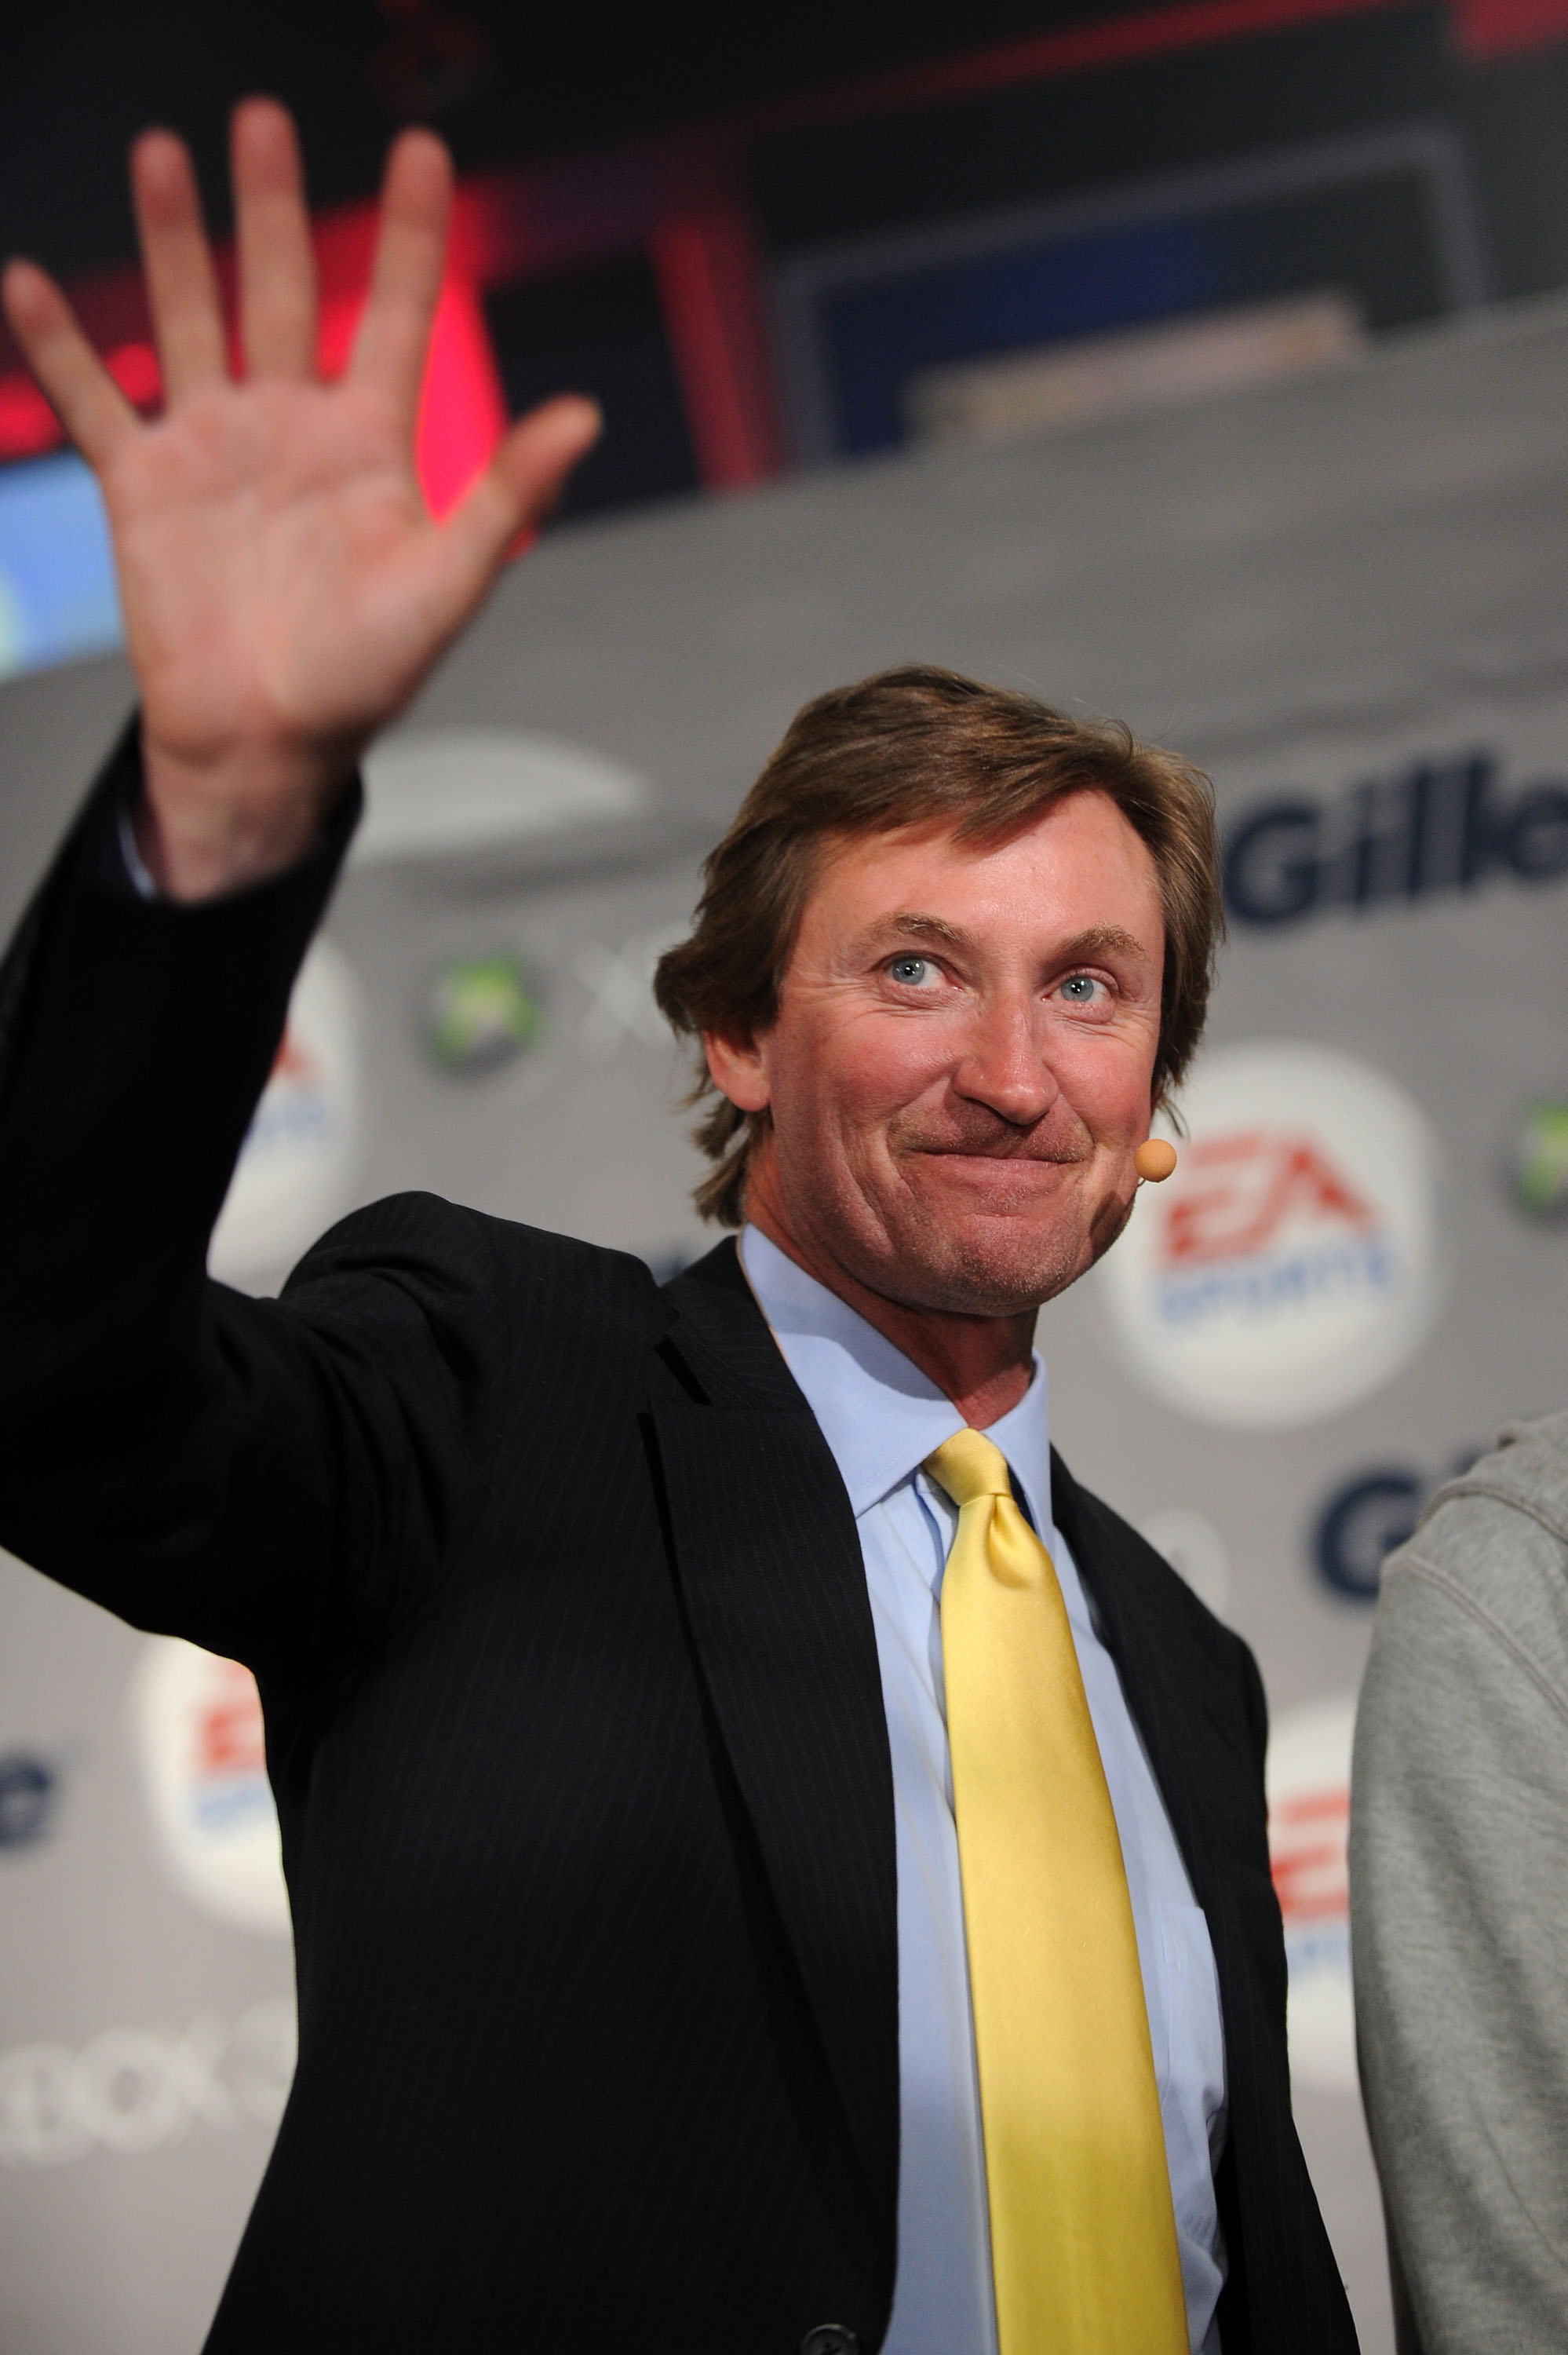 NEW YORK - APRIL 14:  Hockey Hall of Famer Wayne Gretzky attends the Gillette - EA SPORTS Champions of Gaming Global Finals at ARENA Event Space on April 14, 2010 in New York City.  (Photo by Bryan Bedder/Getty Images)